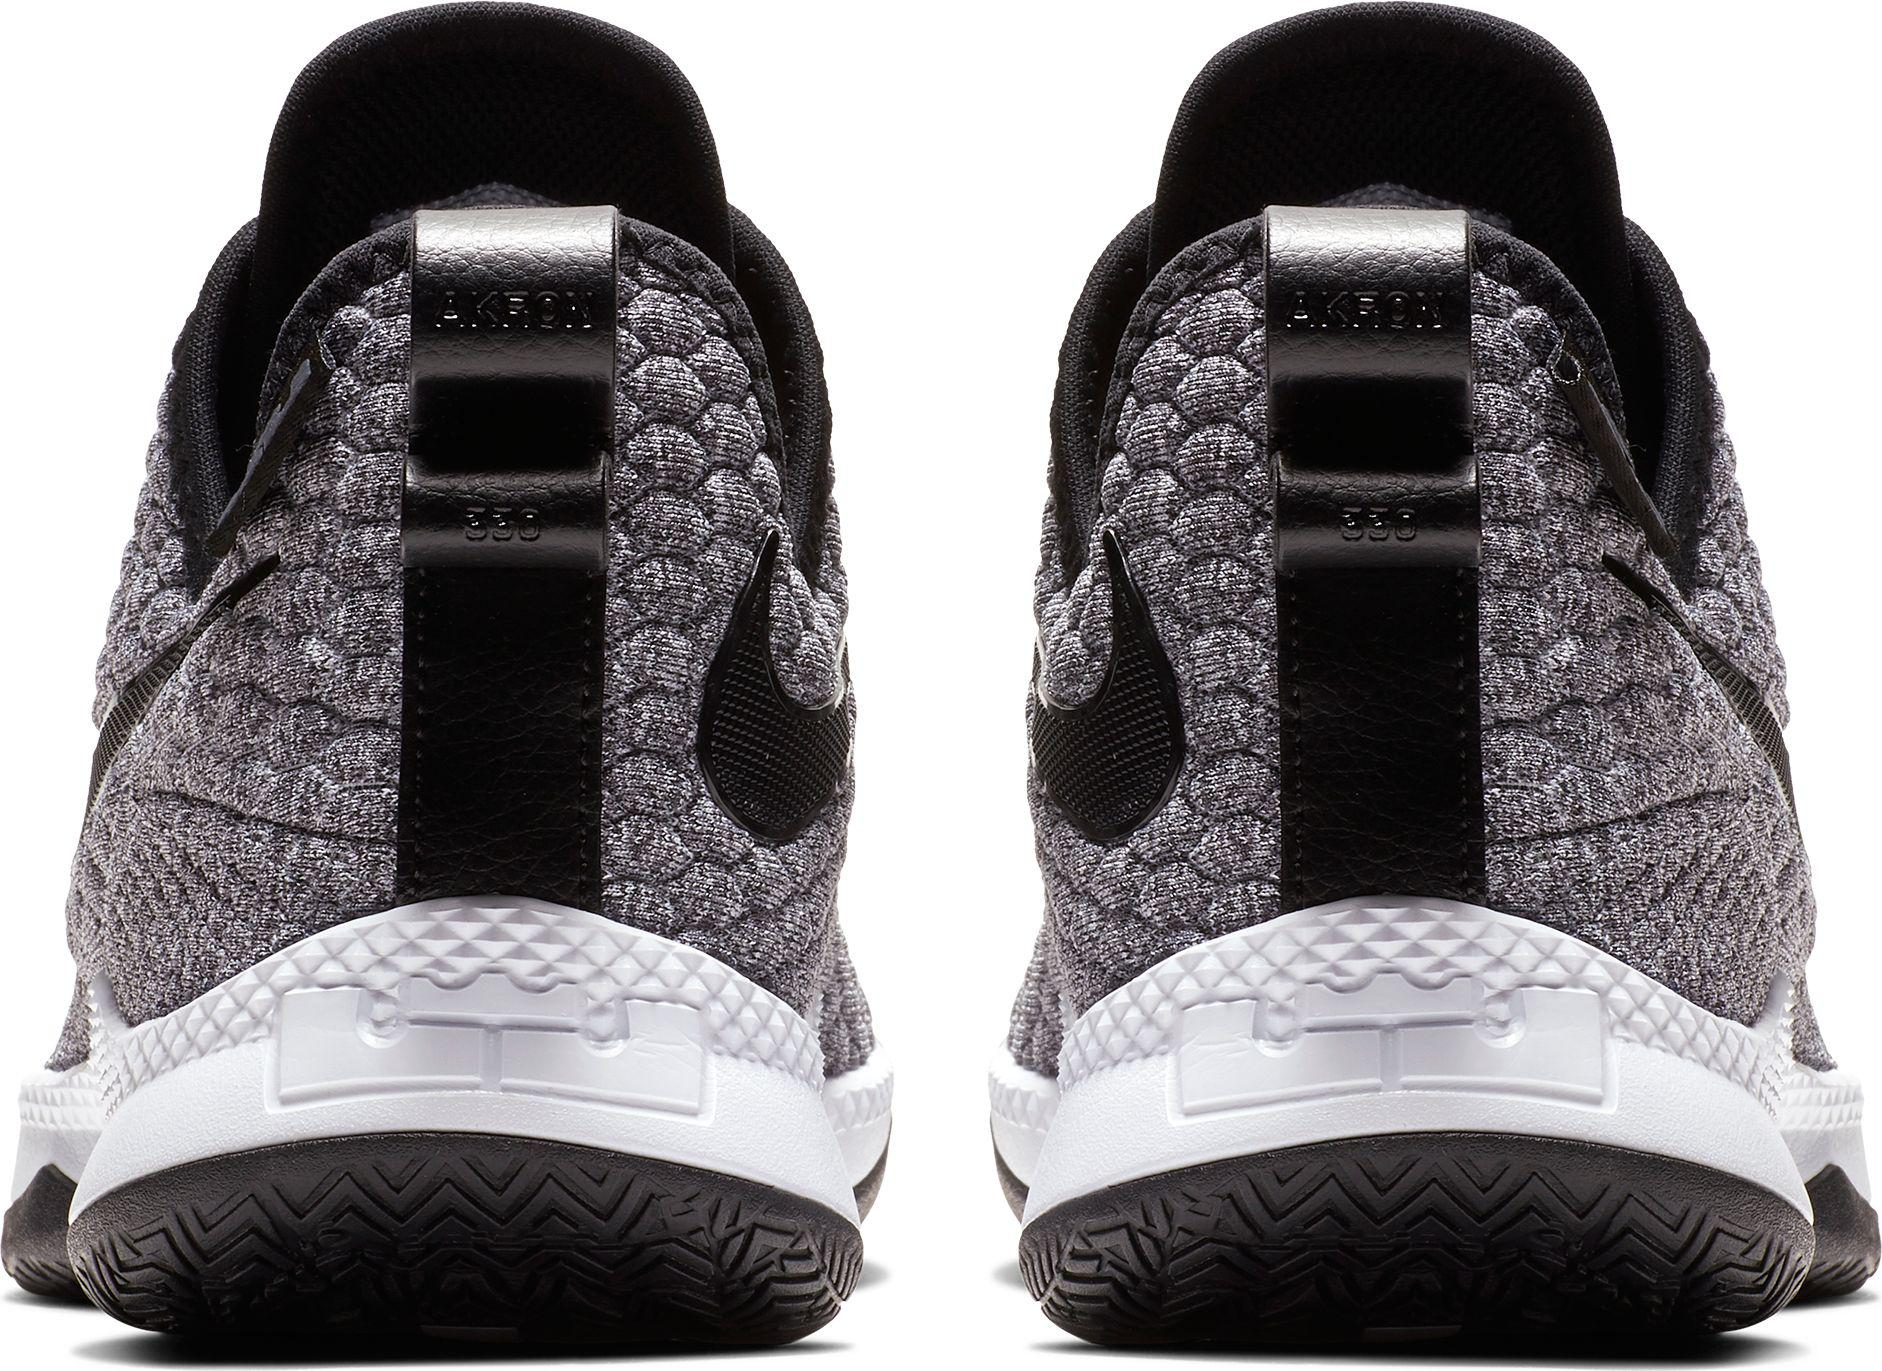 003bd554795f Nike Lebron Witness Iii Basketball Shoes in Gray for Men - Lyst